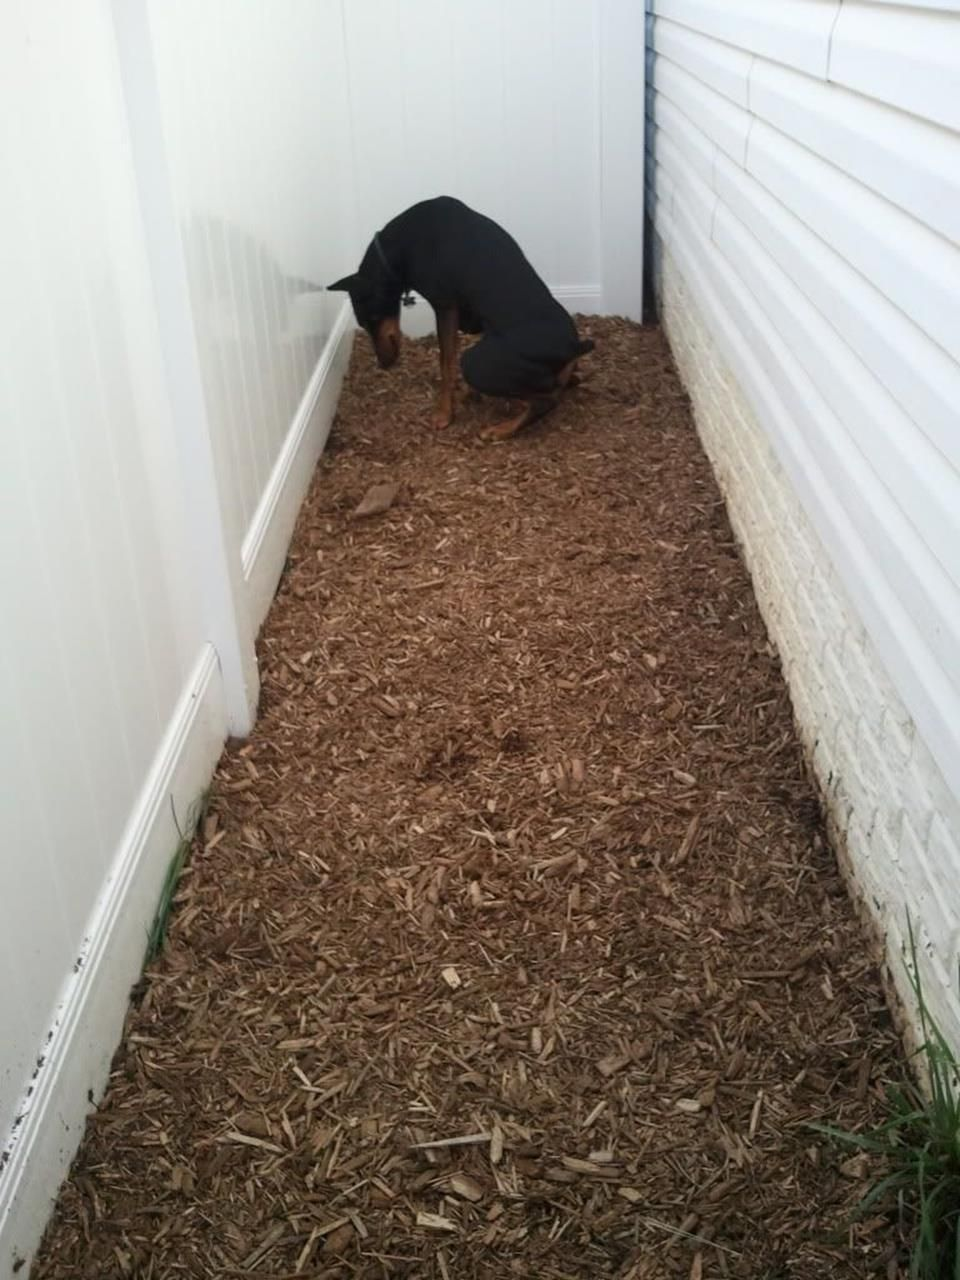 Best Way To Potty Train: 25 Best Cheap Backyard Fencing Ideas For Dogs